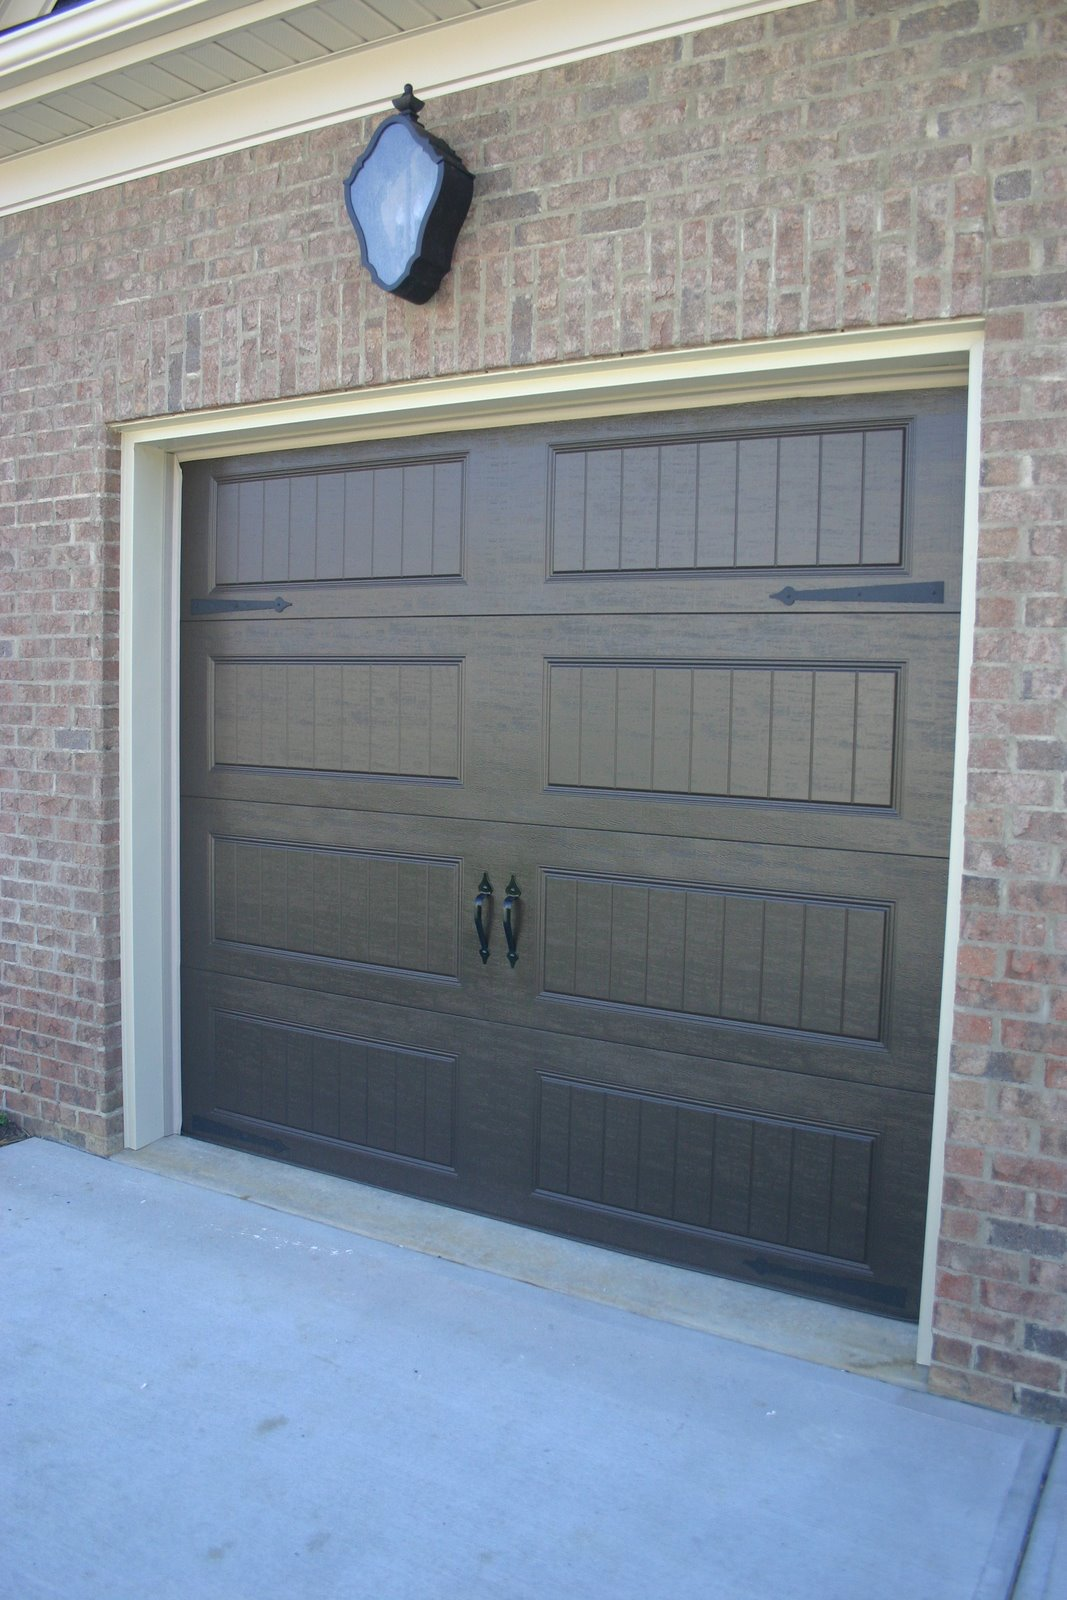 Photos features sheffingdell southpark charlotte nc for Standard garage door opening